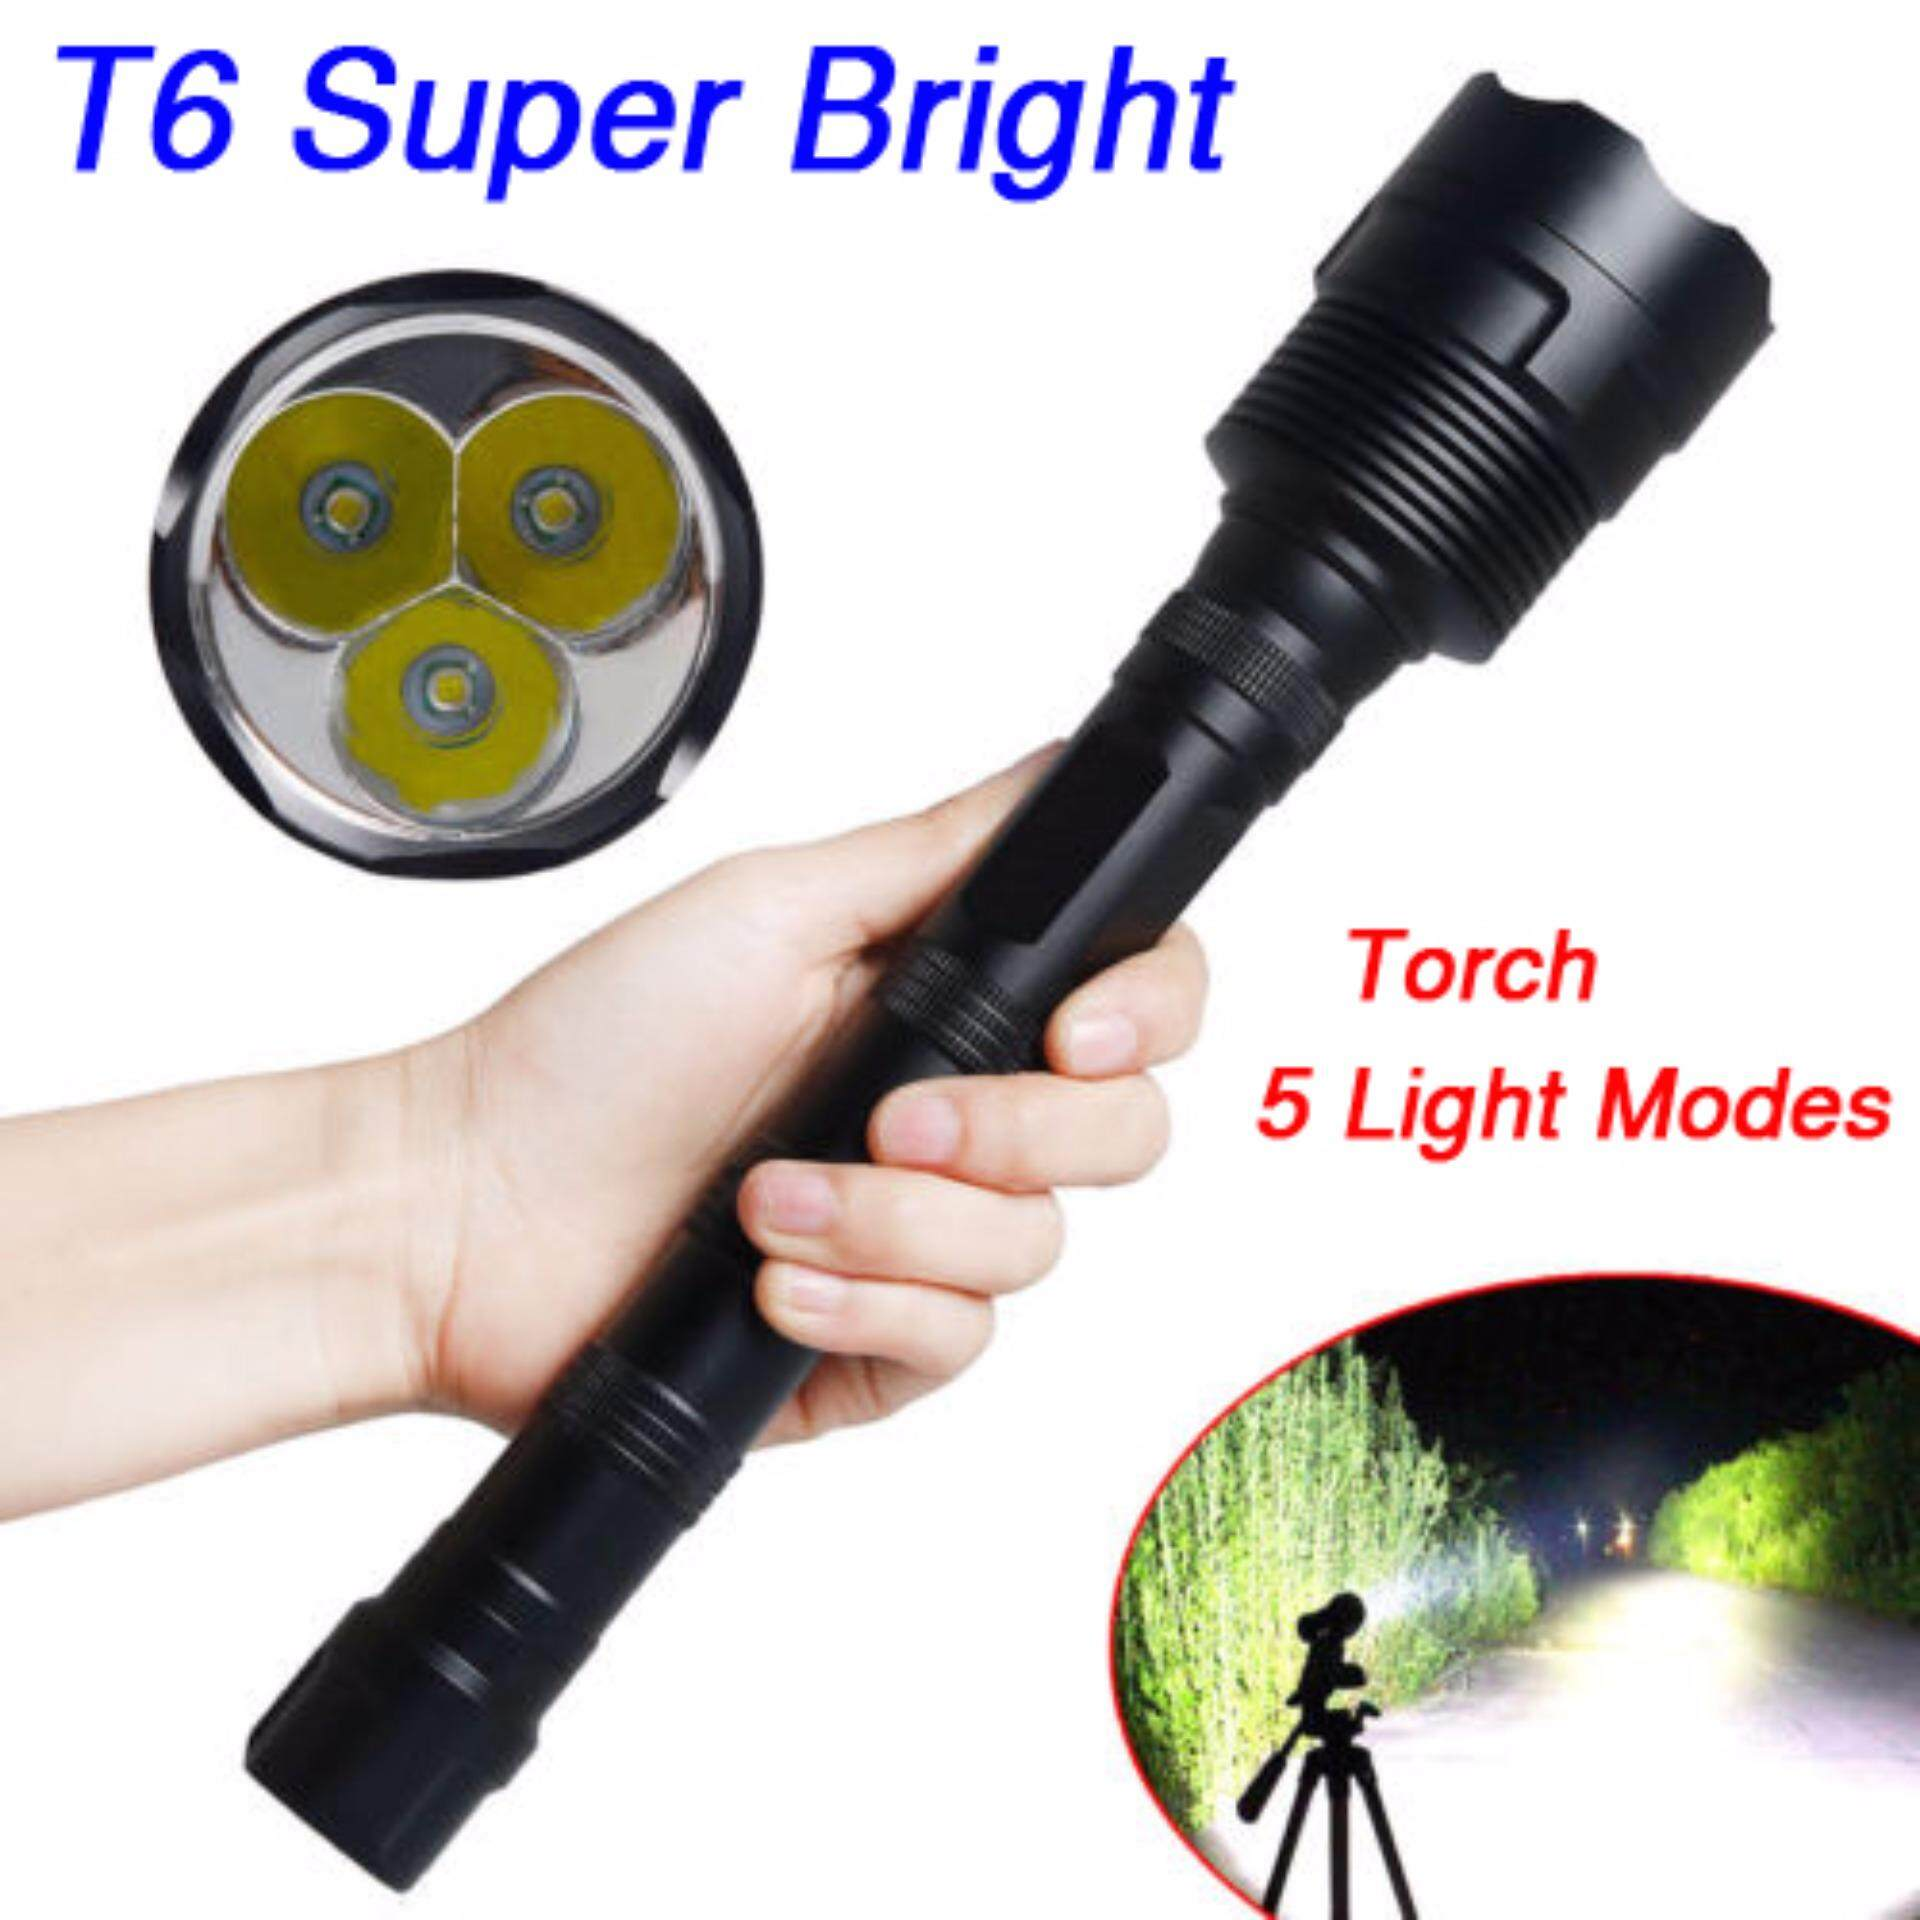 ไฟฉายแรงสูง Super Bright 8000 Lumens 3 x CREE XM-L T6 LED Flashlight Torch with 3X 18650 battery (not included)